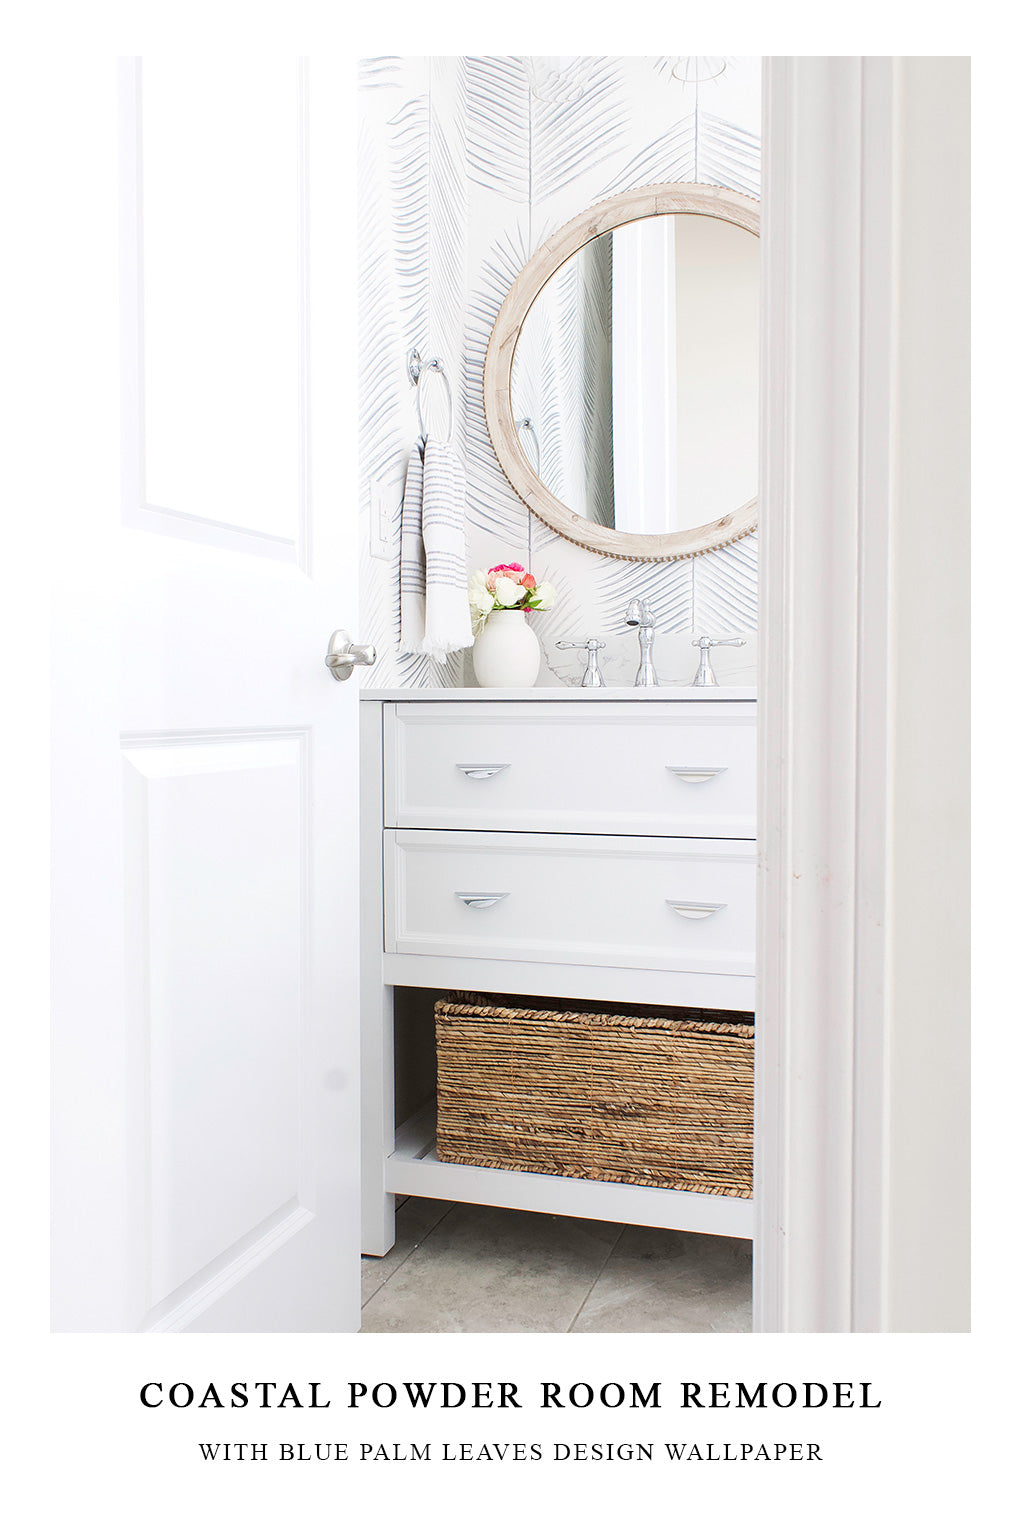 White and blue Hamptons style powder room interior in Studio McGee style with farmhouse decor elements